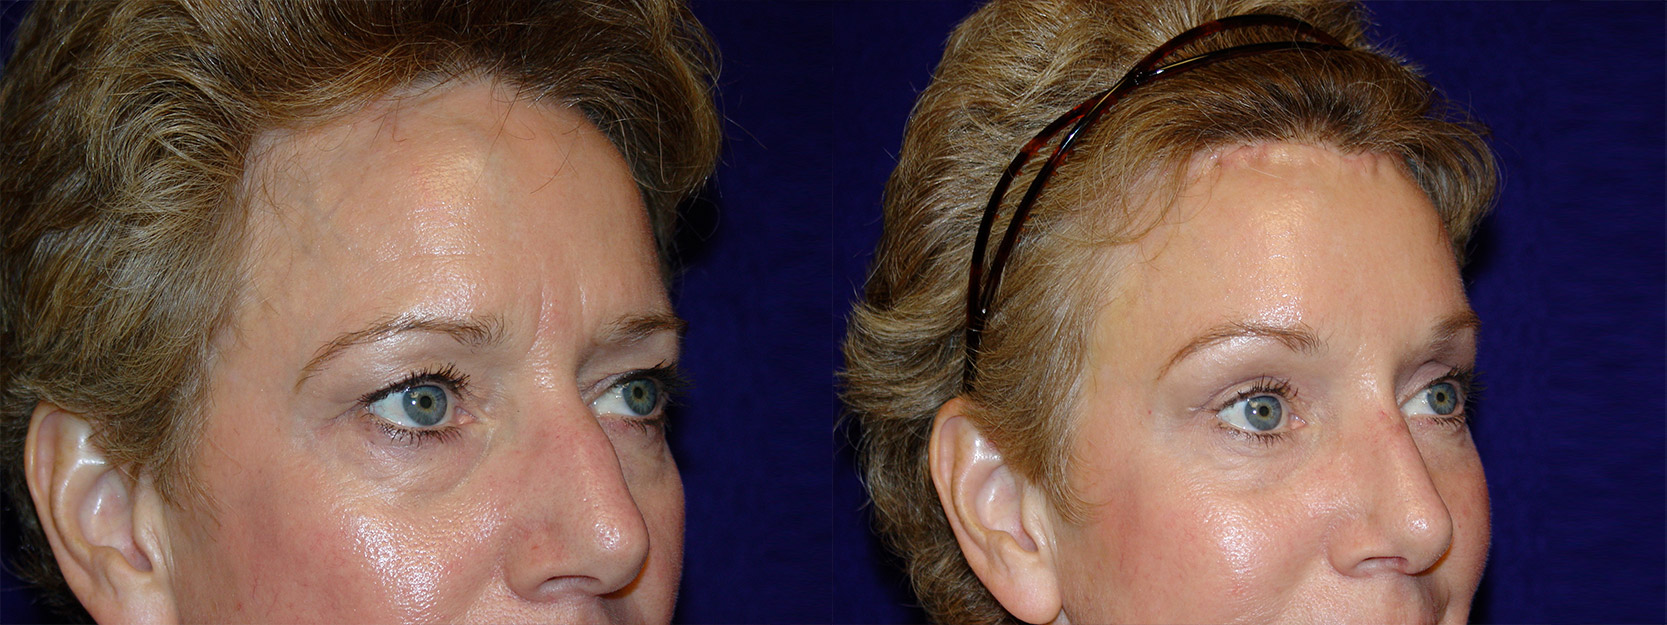 Right 3/4 View - Browlift and Rhinoplasty